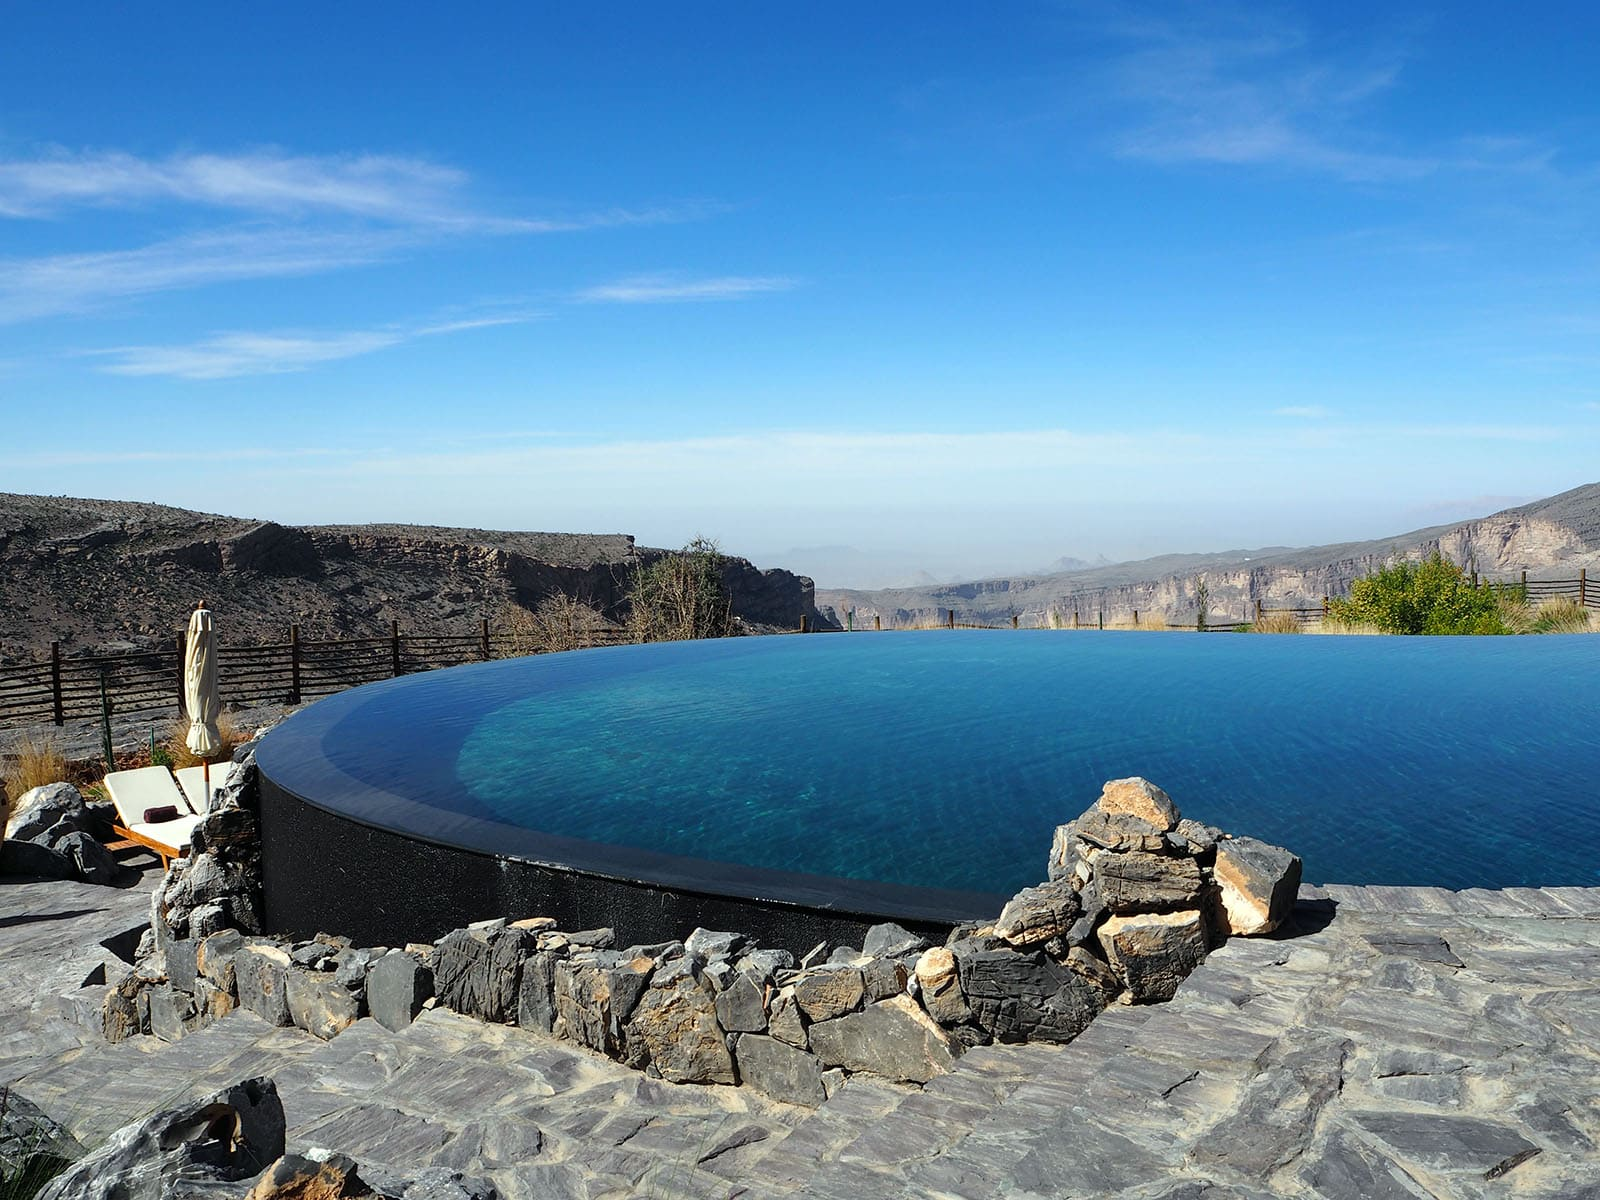 Beautiful Infinity pool at the Alila, Jebal Akhdar Mountains